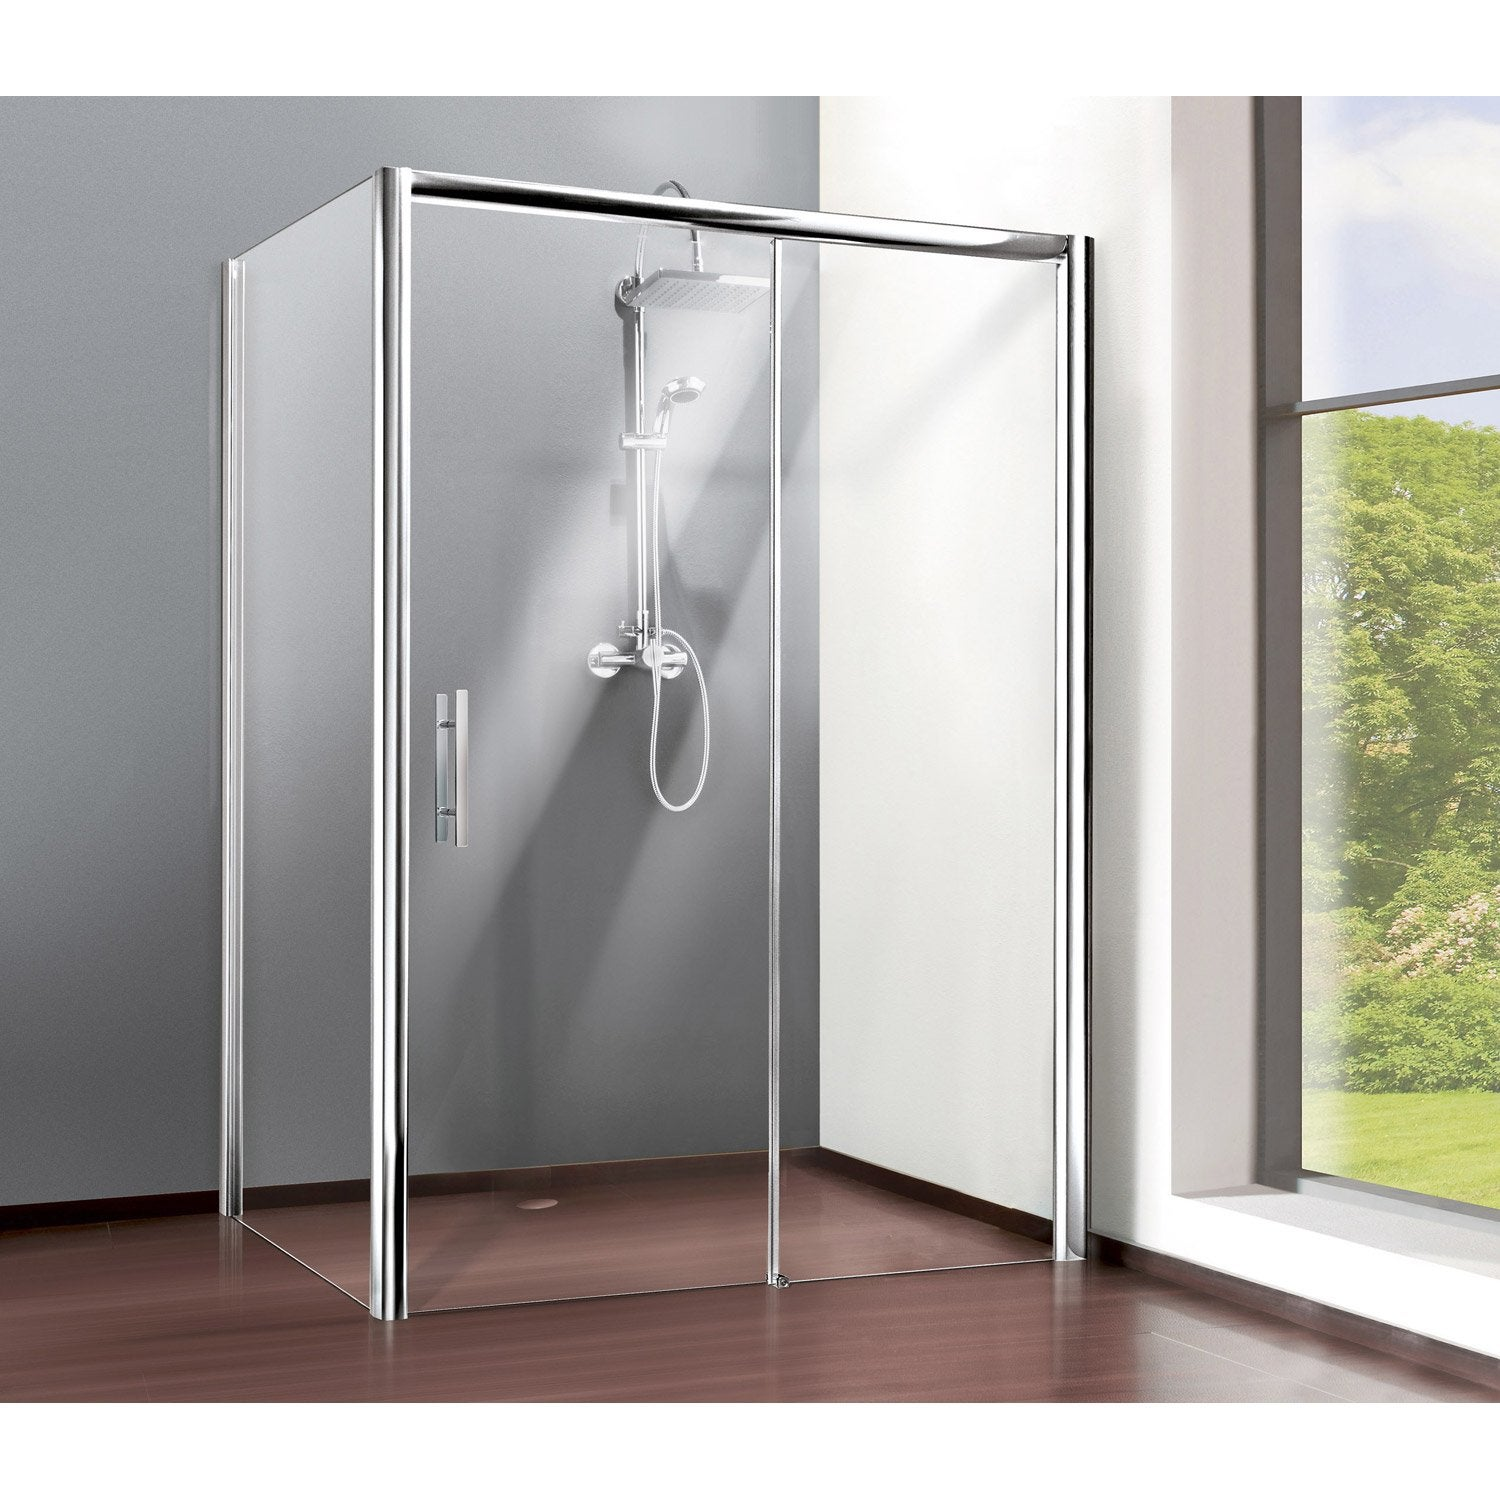 Porte de douche coulissante 97 101 cm profil chrom for Leroy merlin porte douche